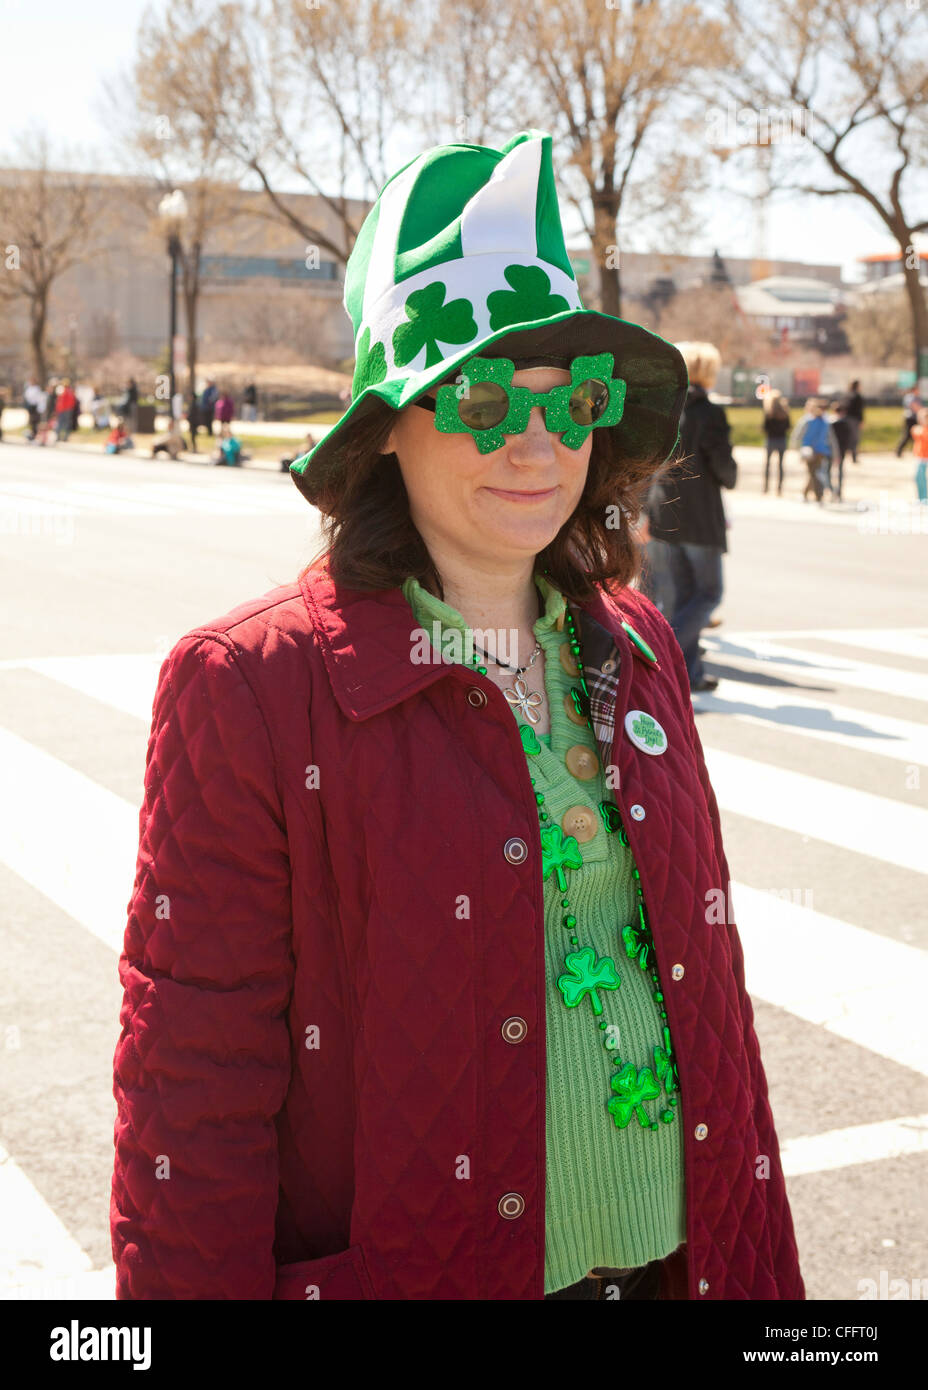 A female St. Patrick's Day parade participant - Stock Image